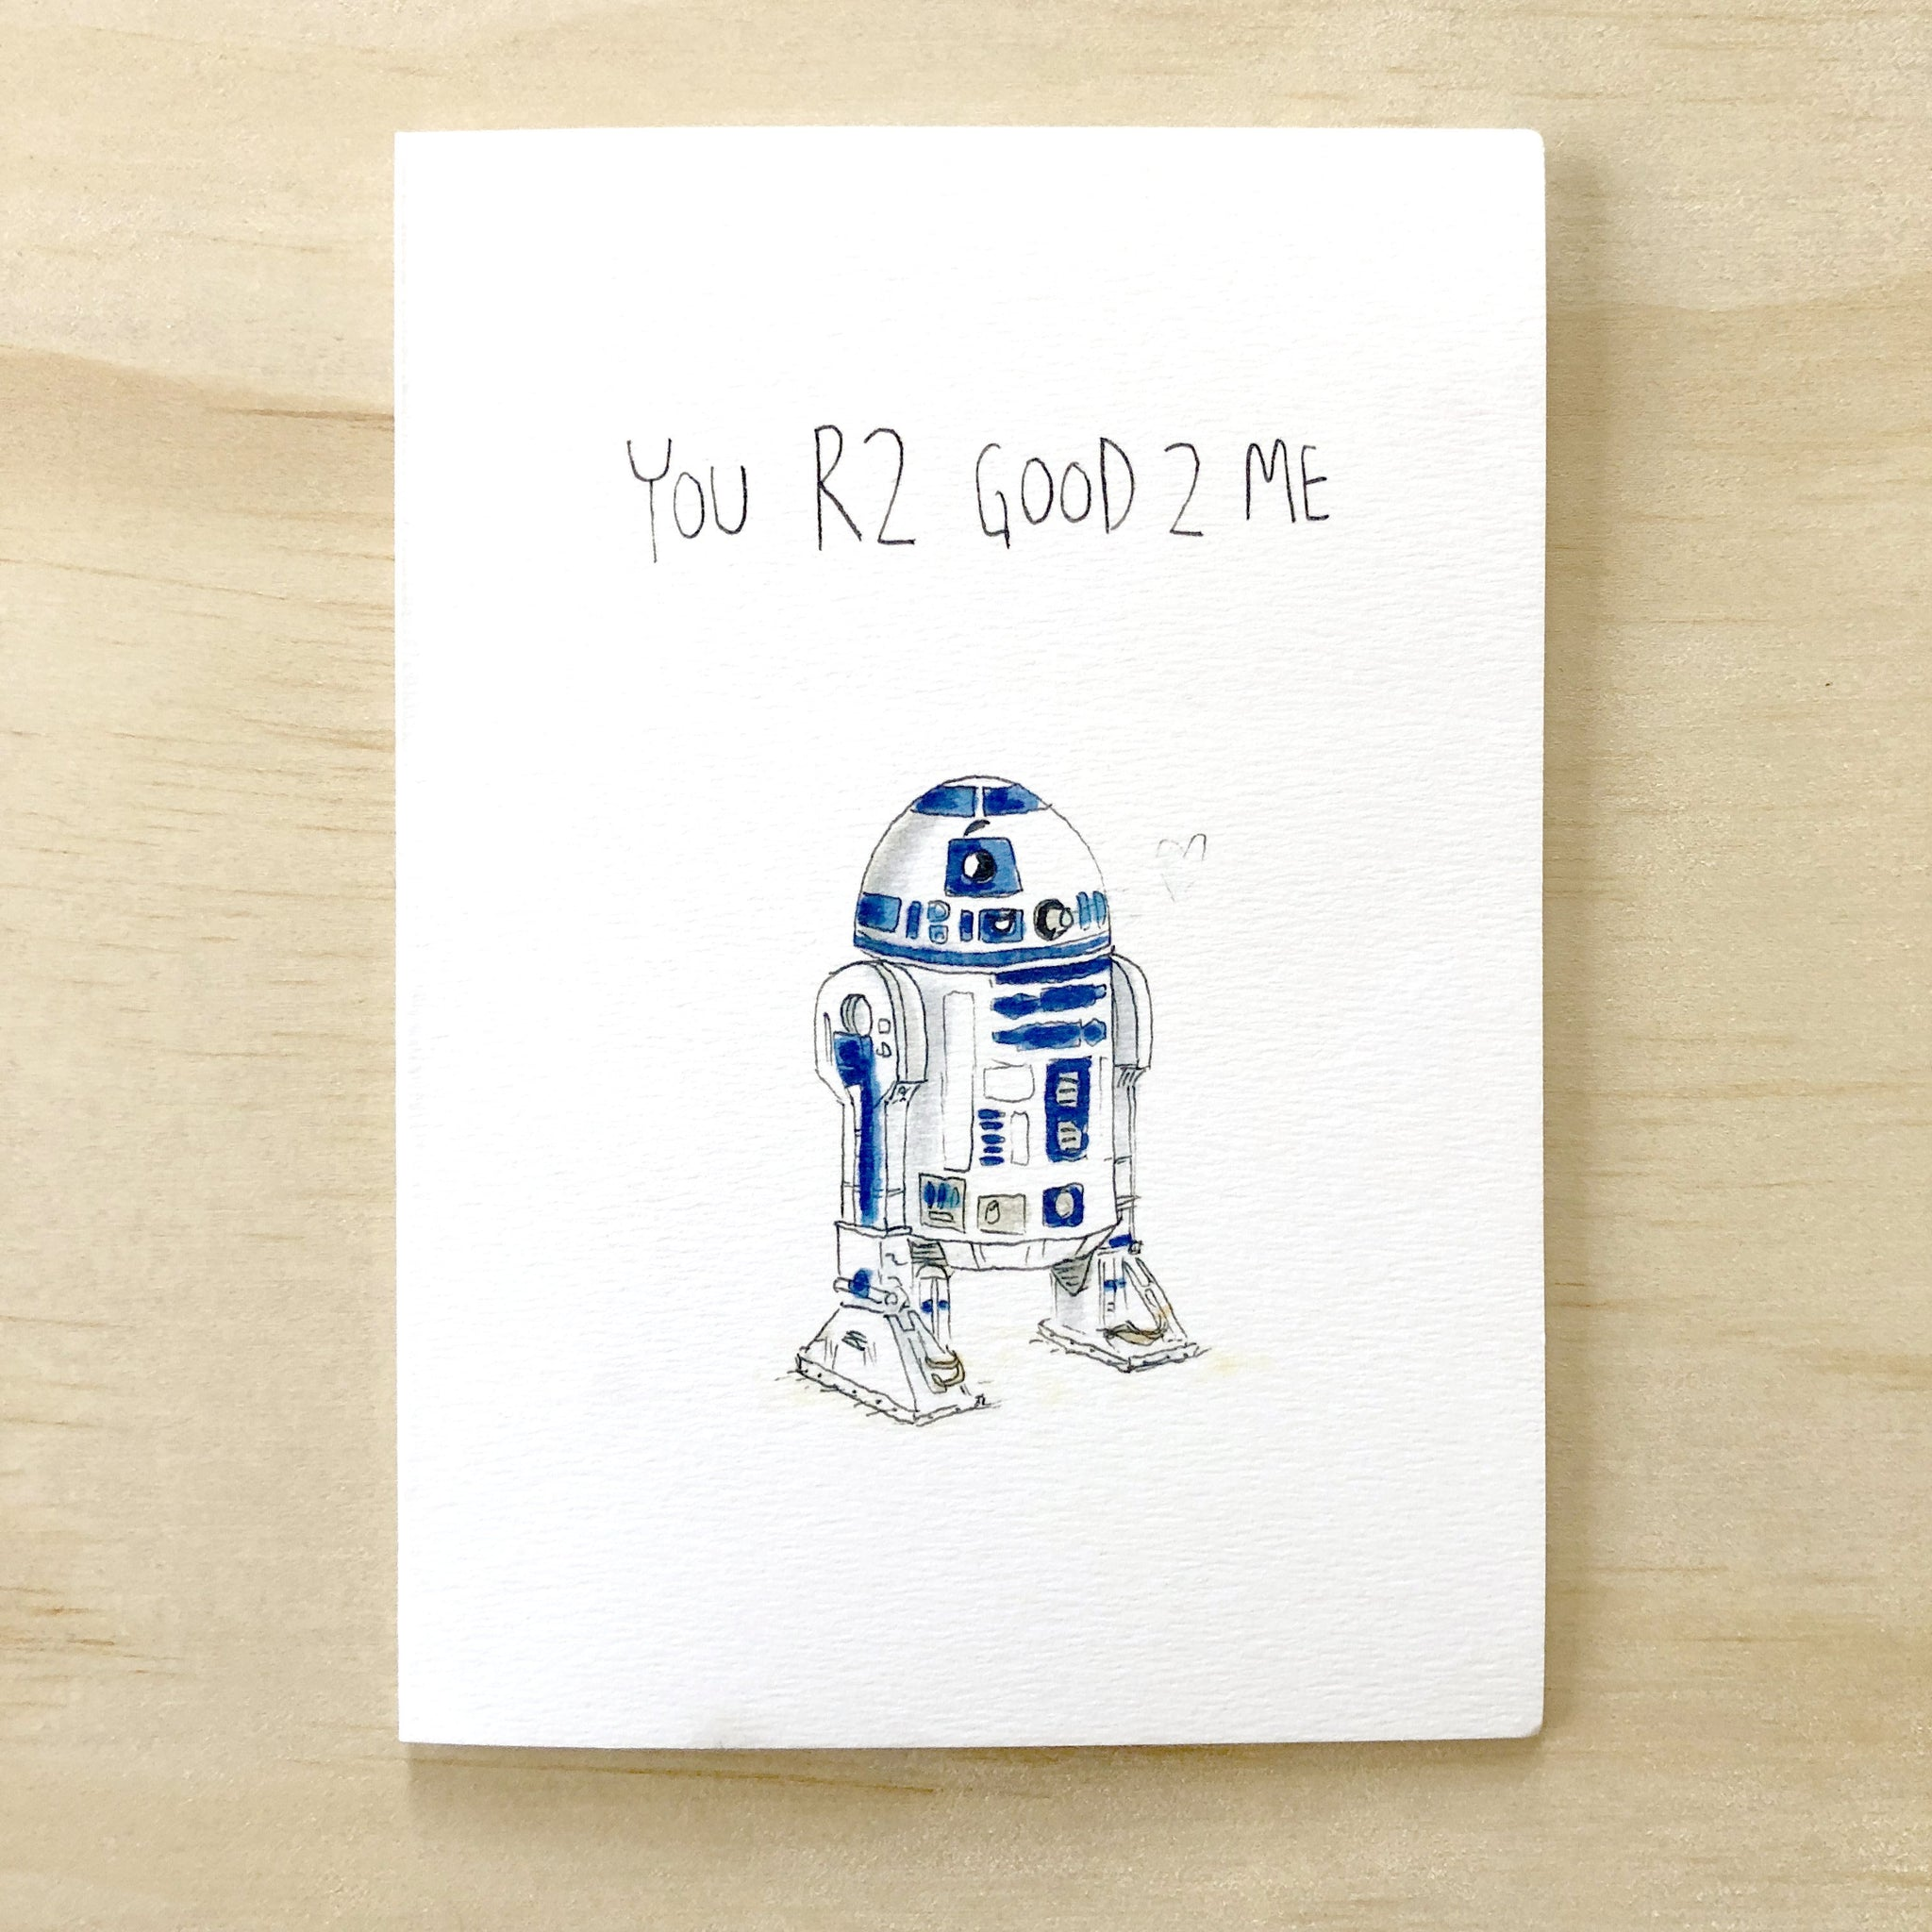 You R2 GooD 2 Me - Well Drawn